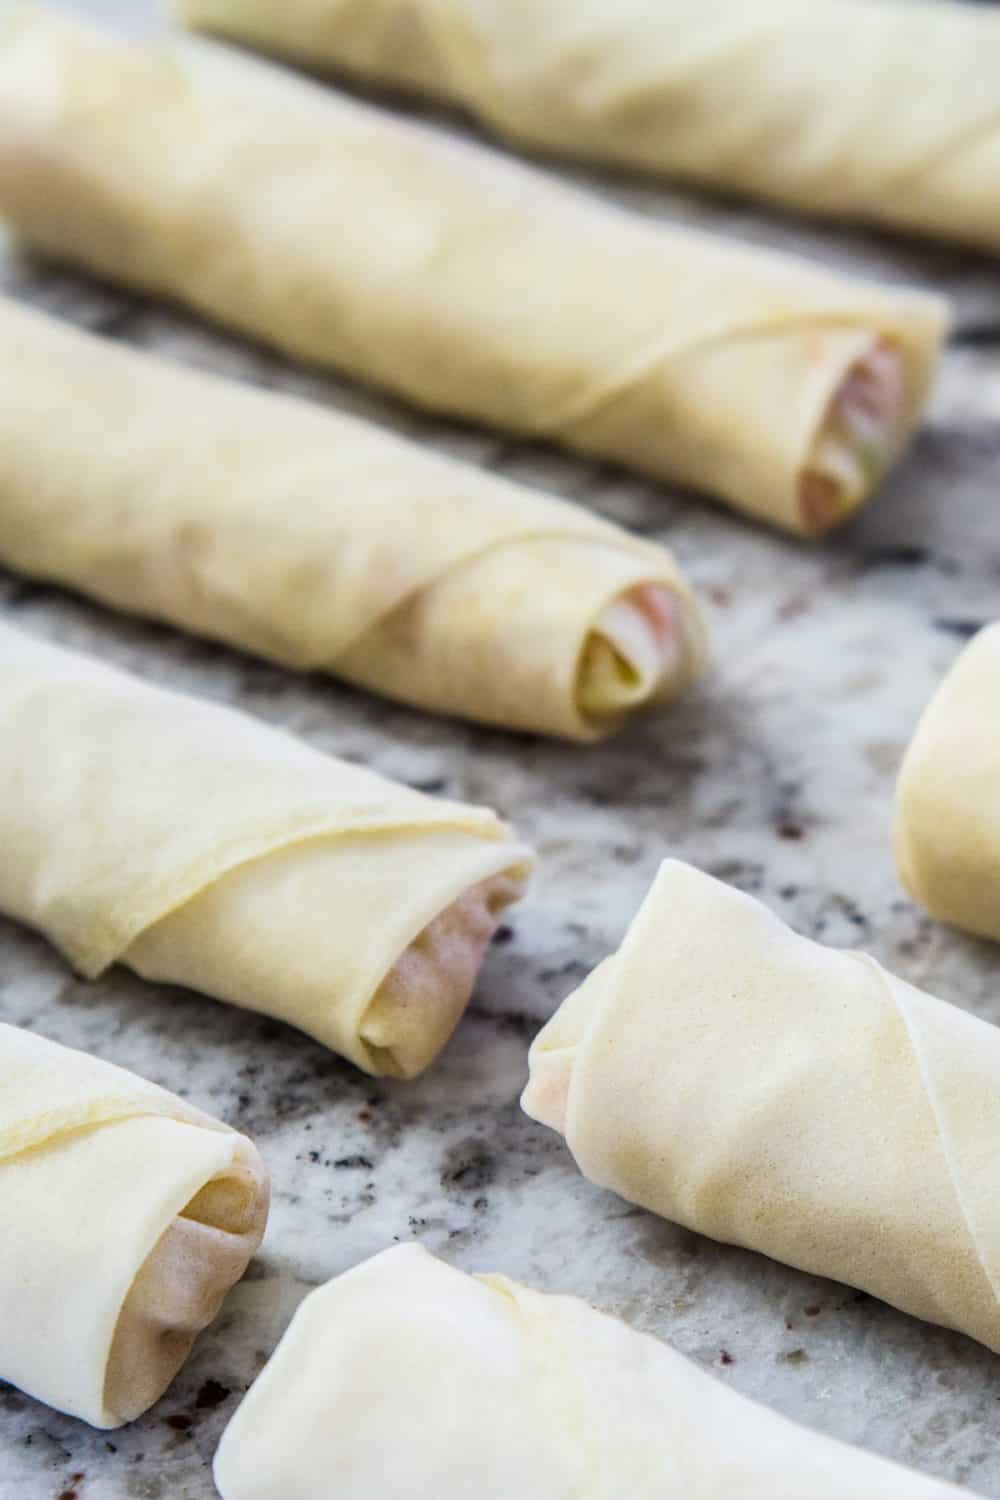 uncooked spring rolls